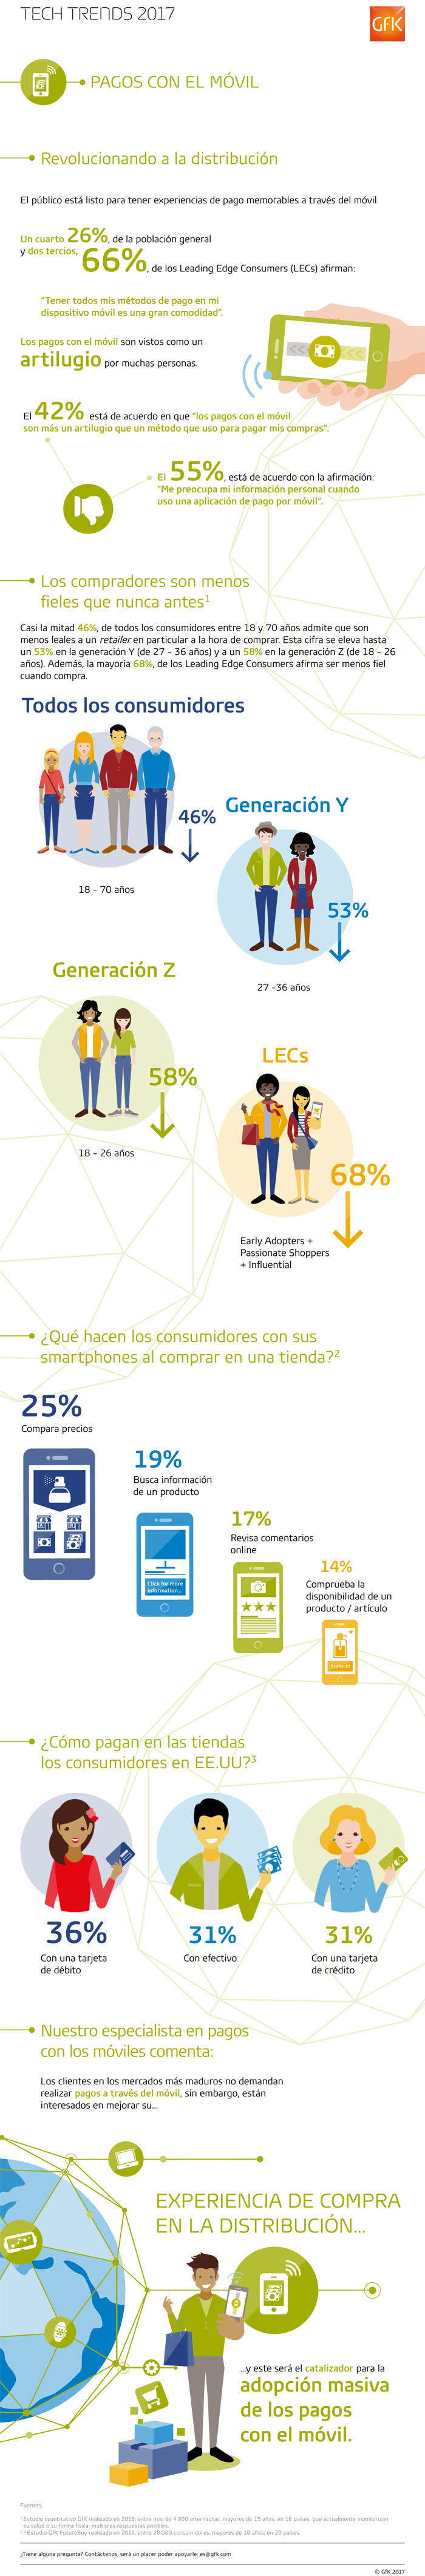 Pago móvil: tendencias #infografia #infographic #tech